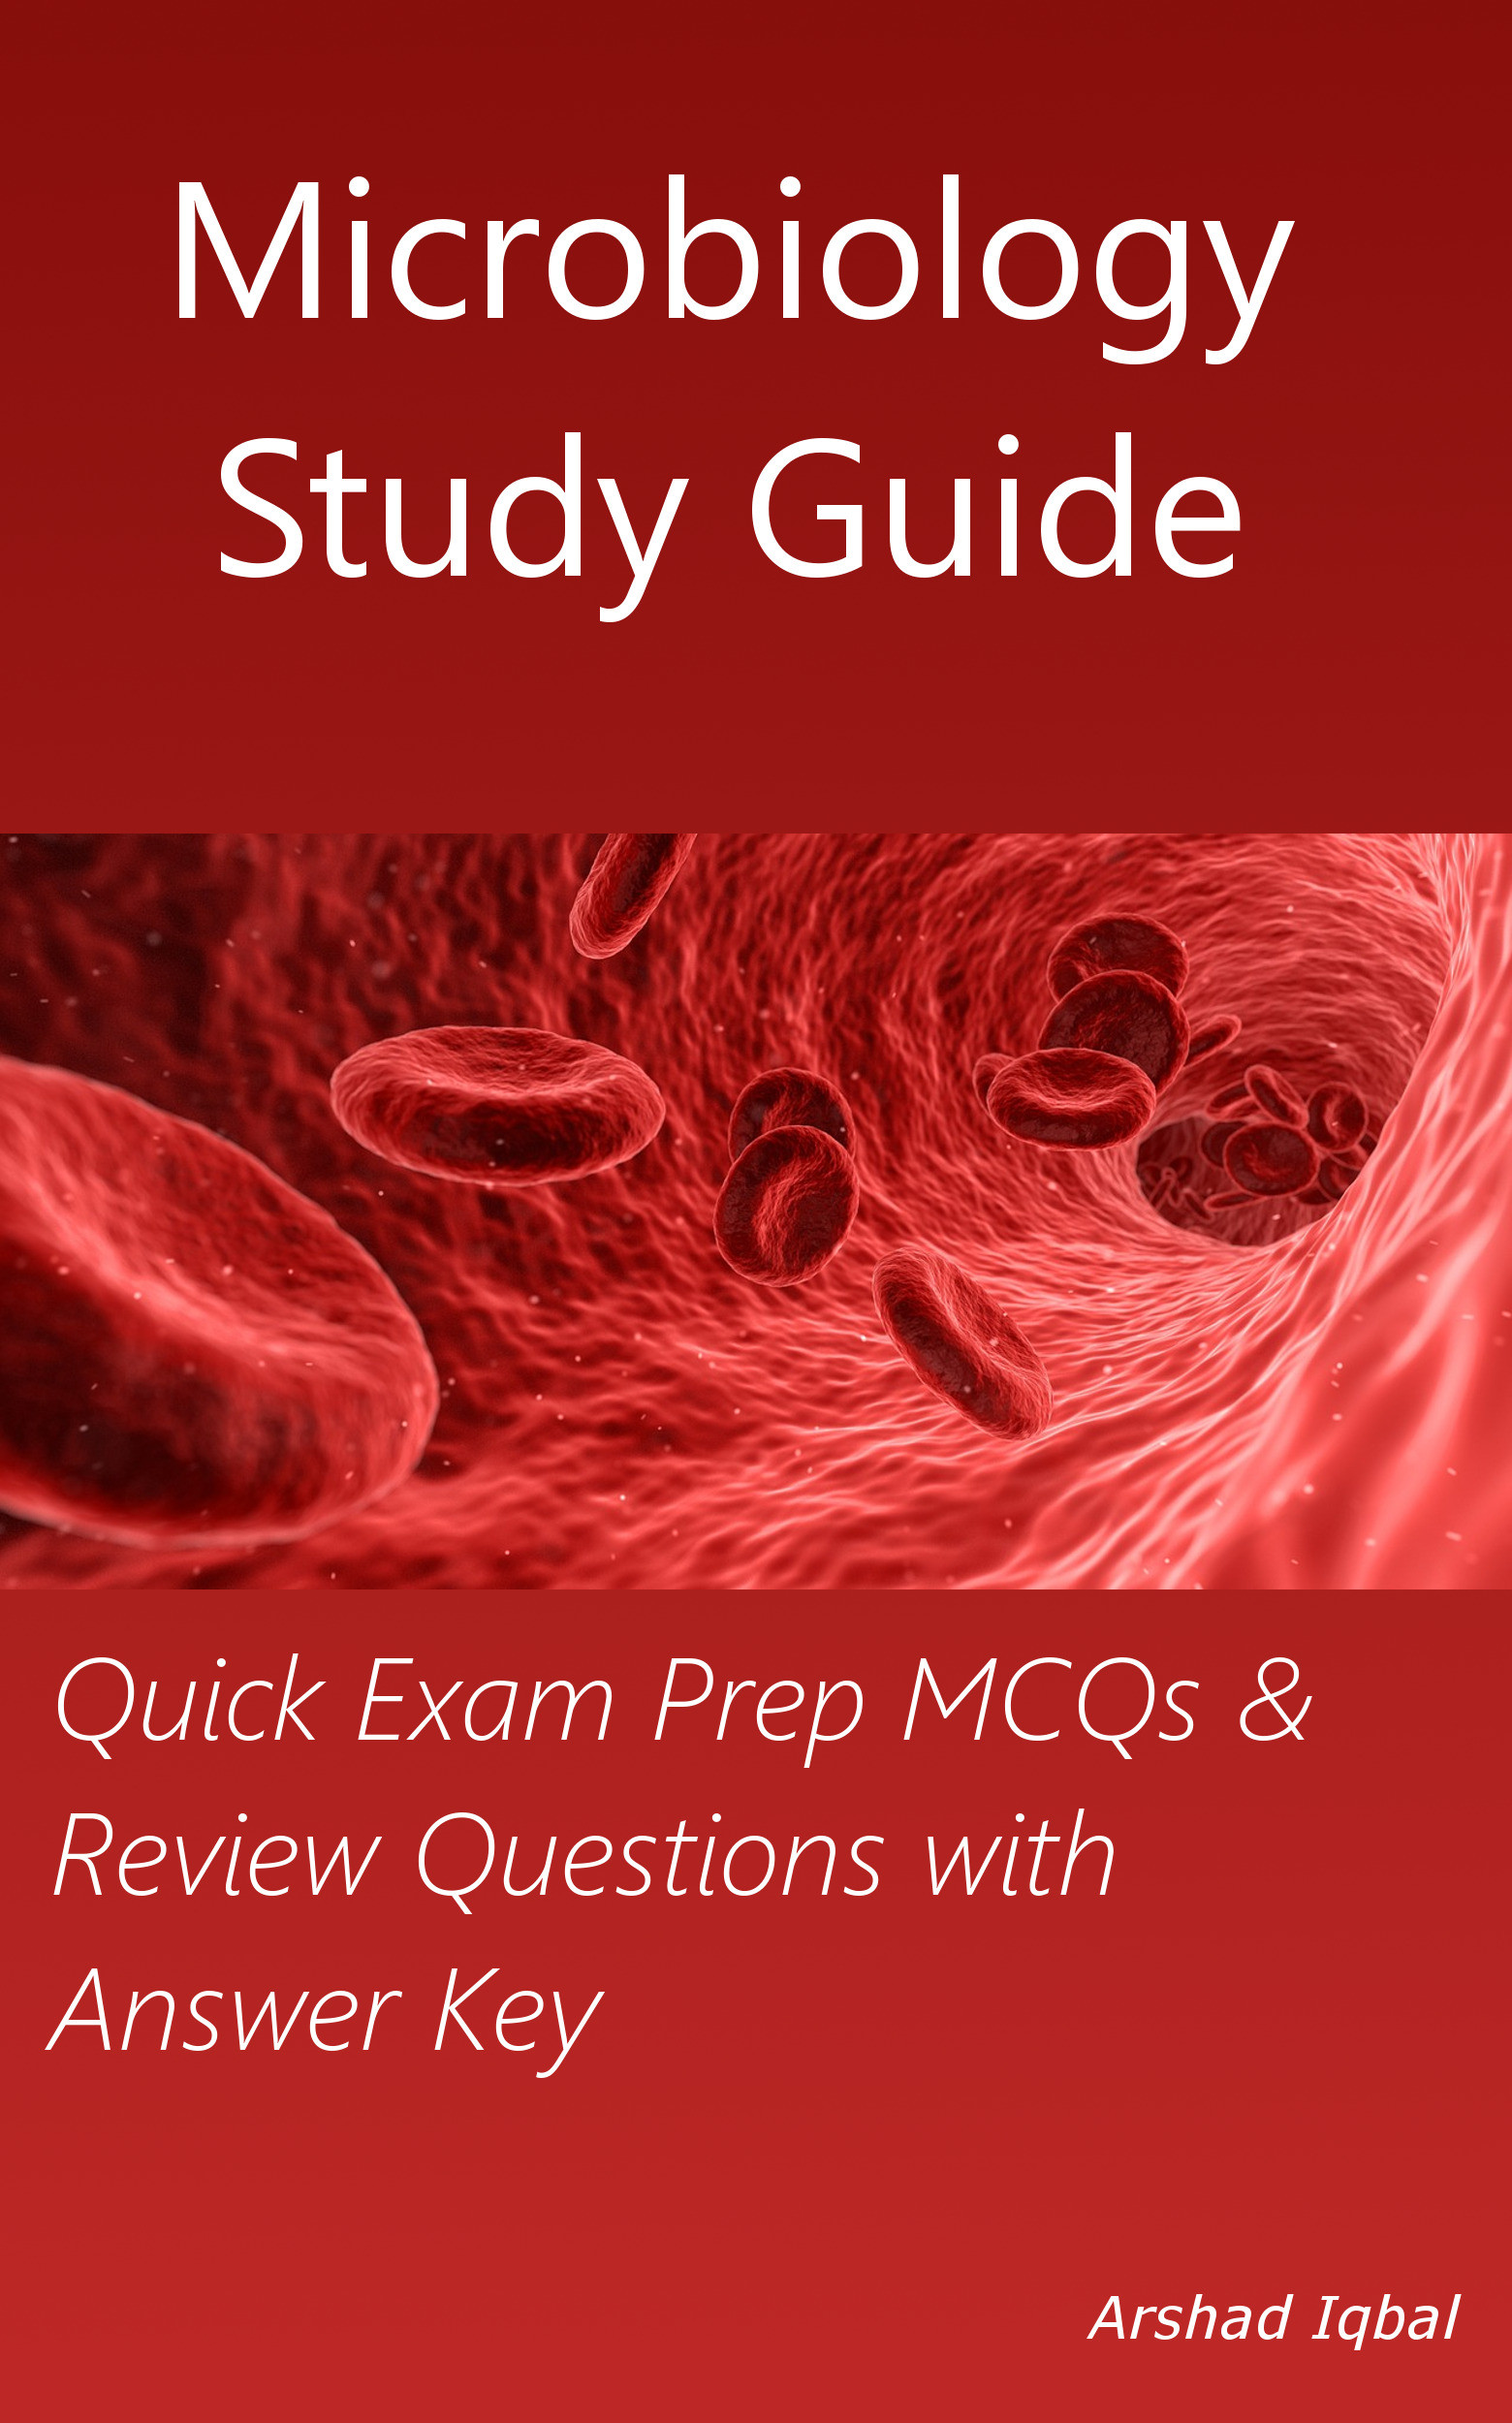 Microbiology Study Guide: Quick Exam Prep MCQs & Review Questions with Answer Key